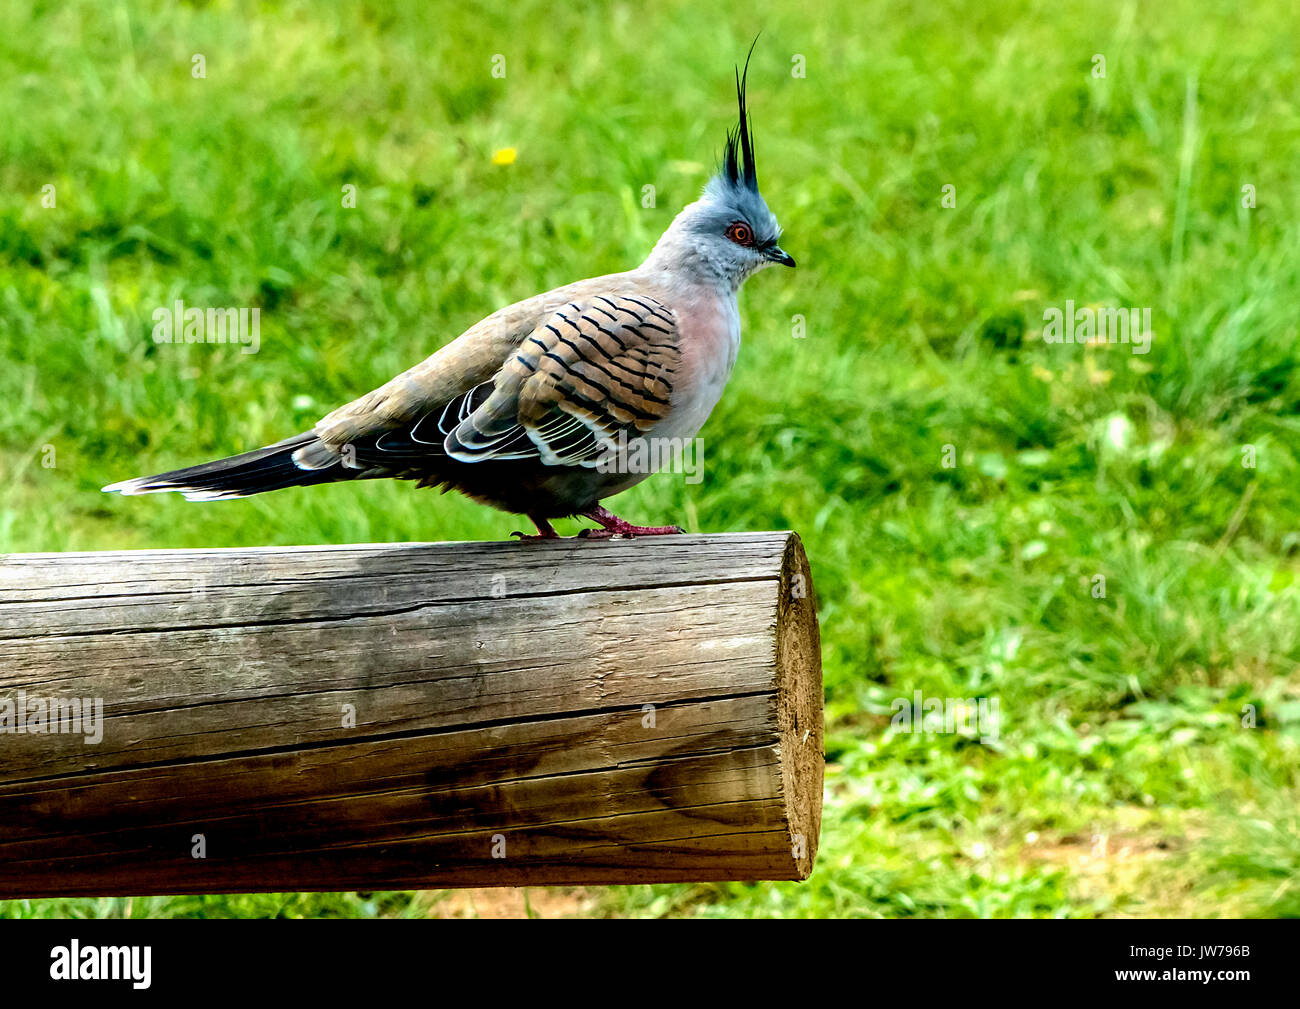 Spinifex pigeon or red plumed pigeon - Stock Image